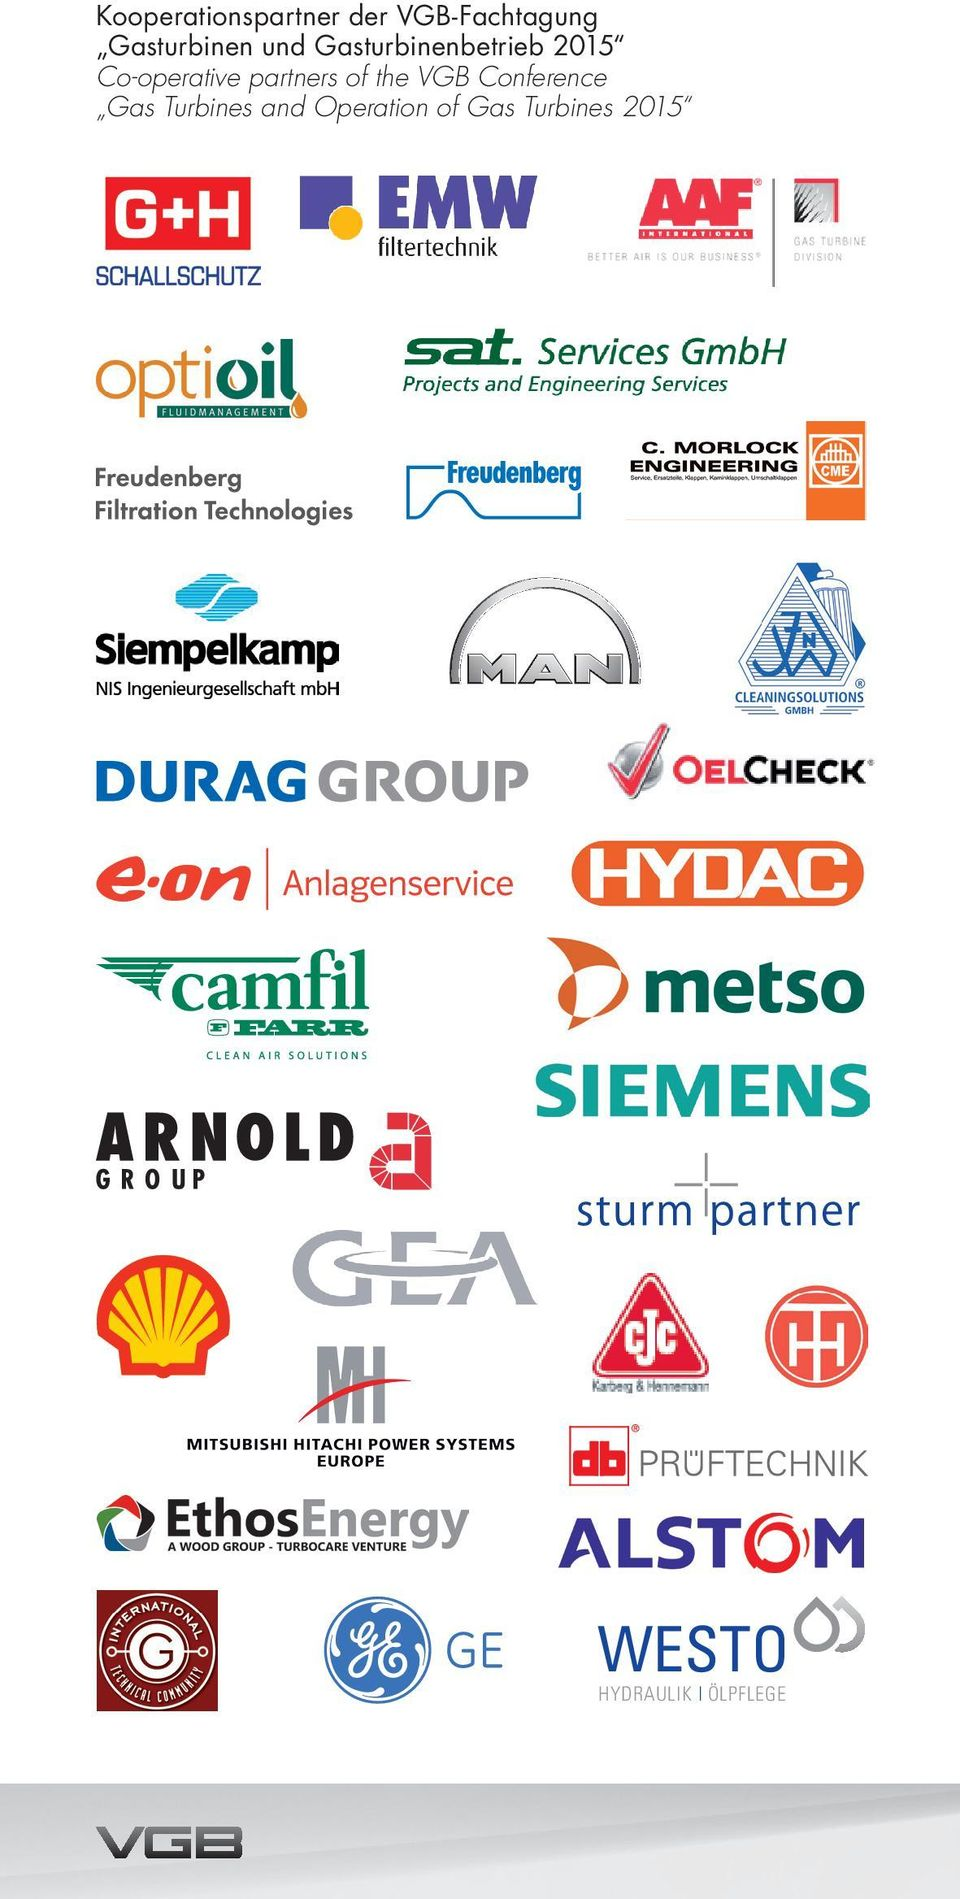 Co-operative partners of the VGB Conference Gas